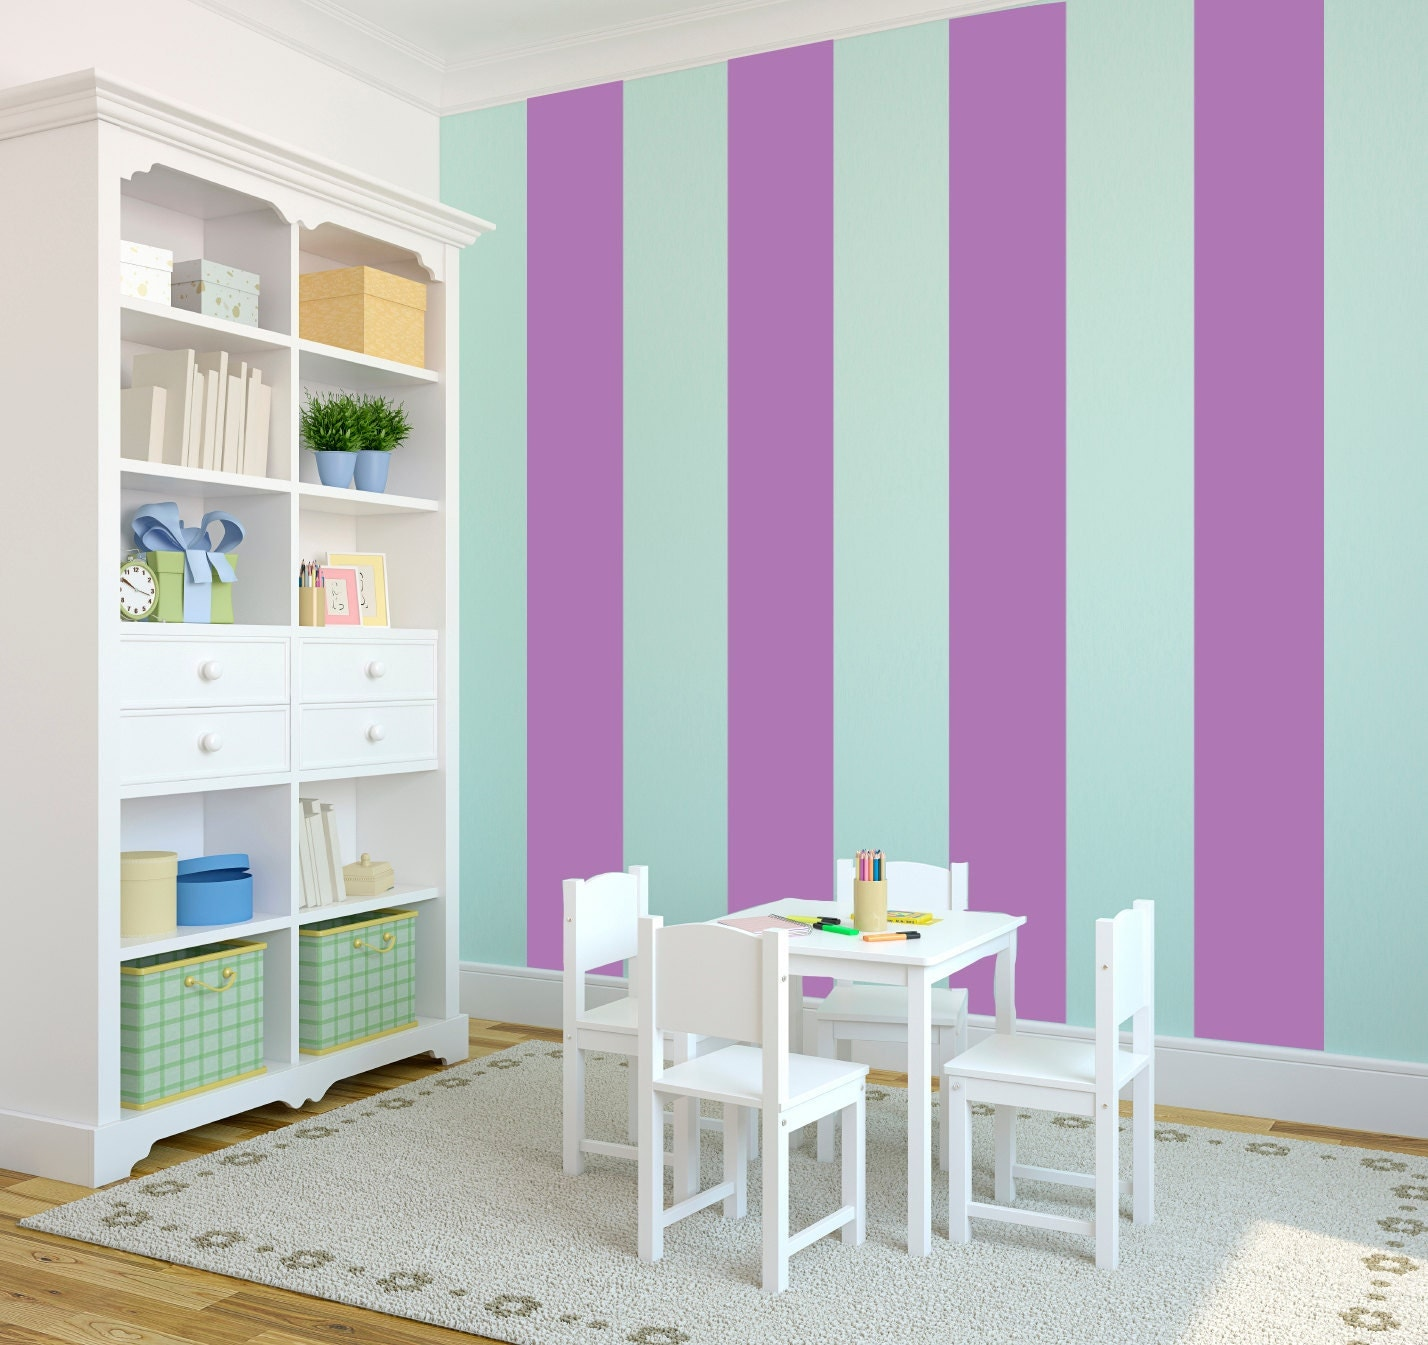 Wall Decor With Stripes : Wall stripes decal custom vinyl art stickers by